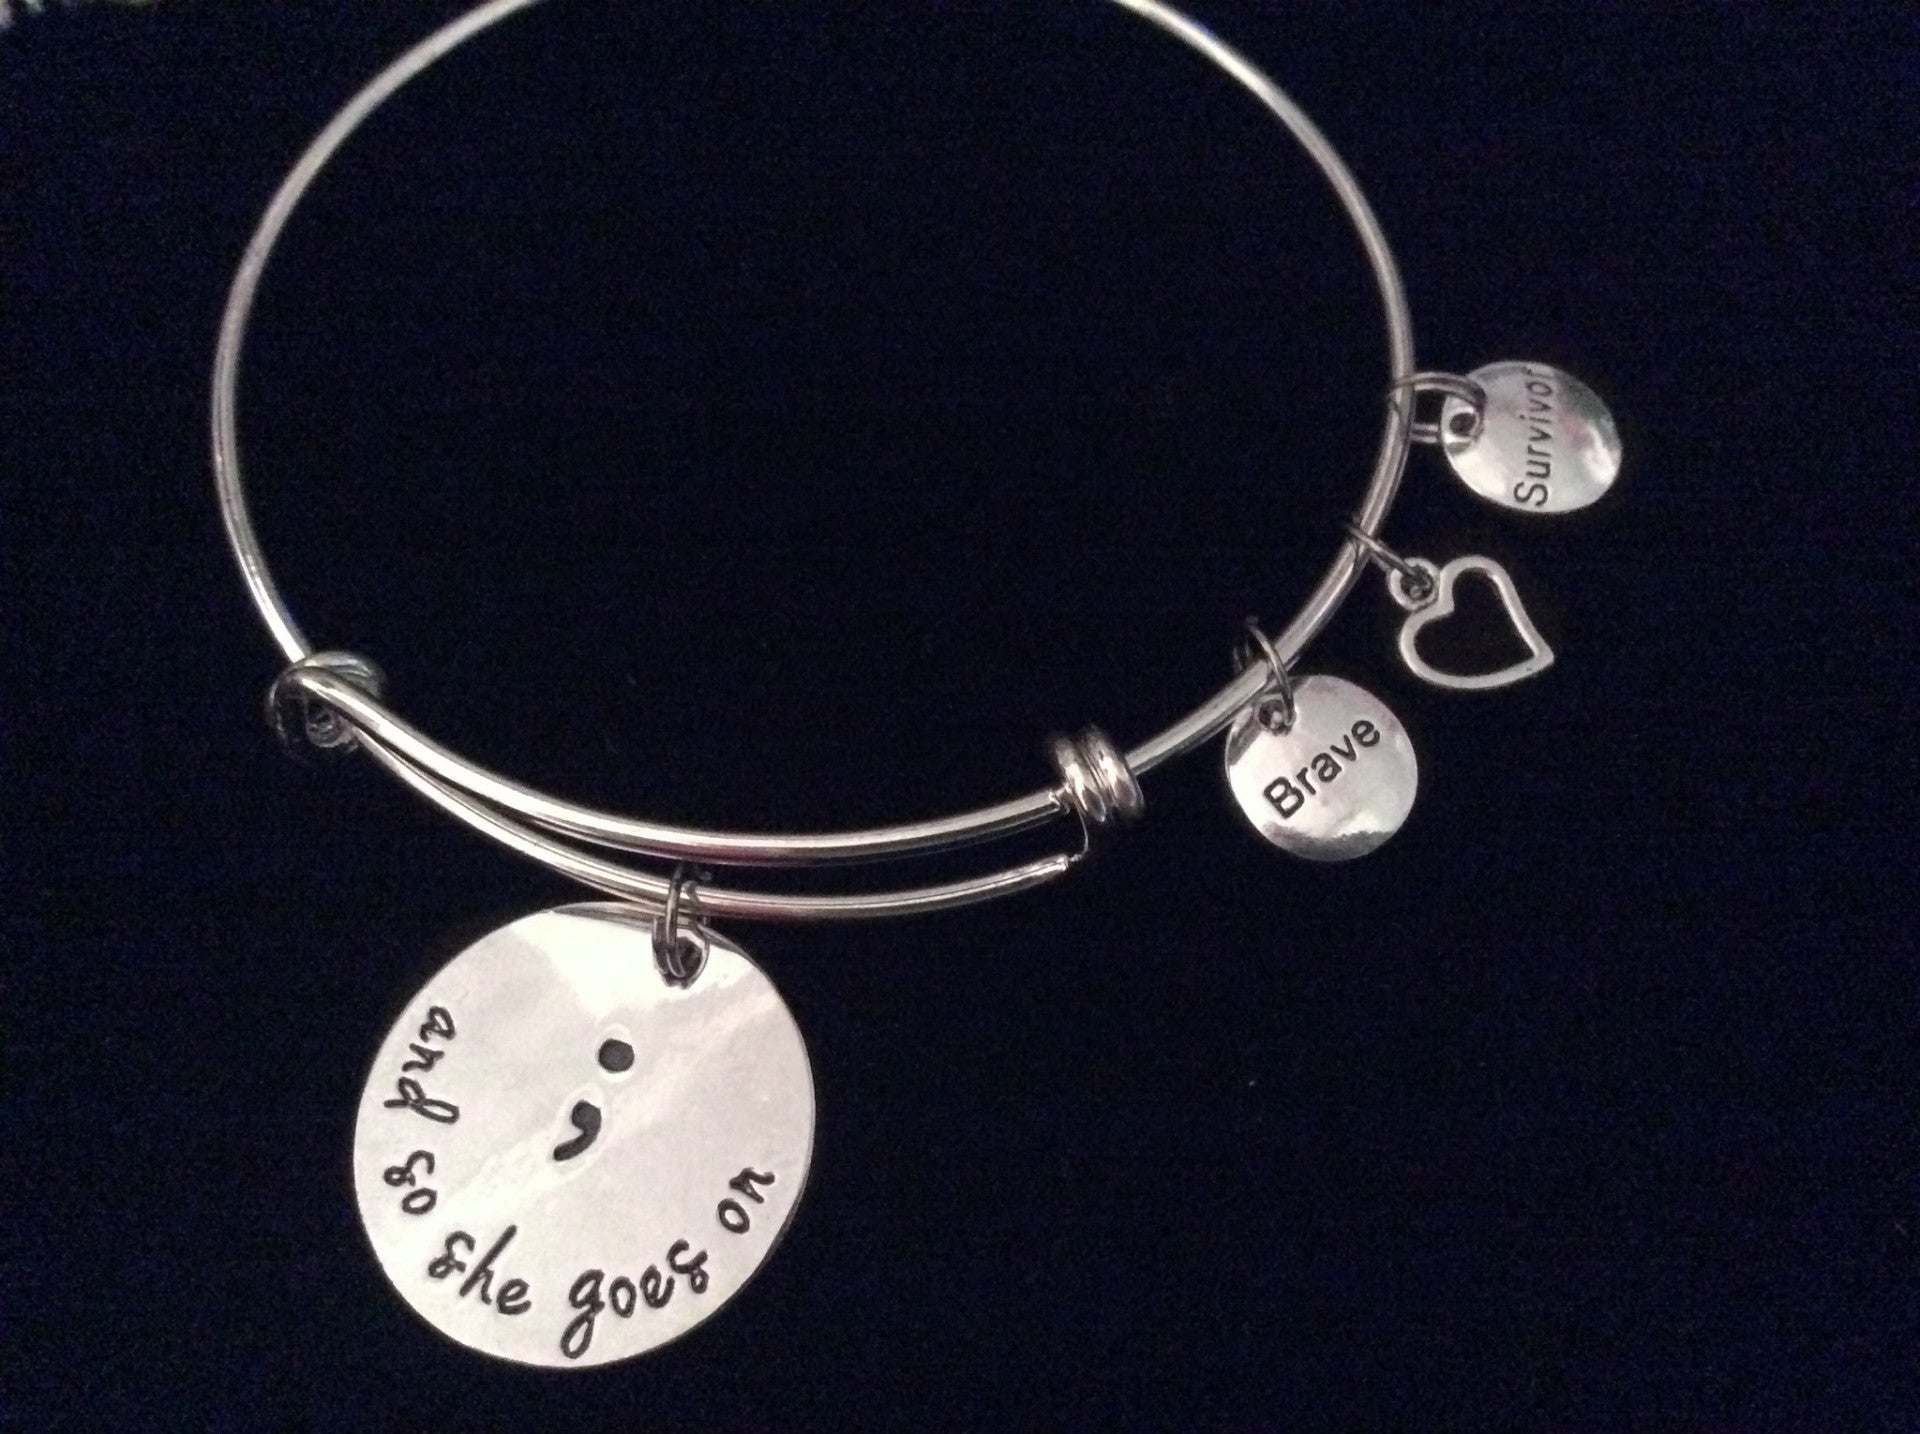 Expandable charm bracelets tagged inspirational and word quotes brave survivor and so she goes on semicolon expandable silver charm bracelet adjustable wire bangle inspirational biocorpaavc Choice Image